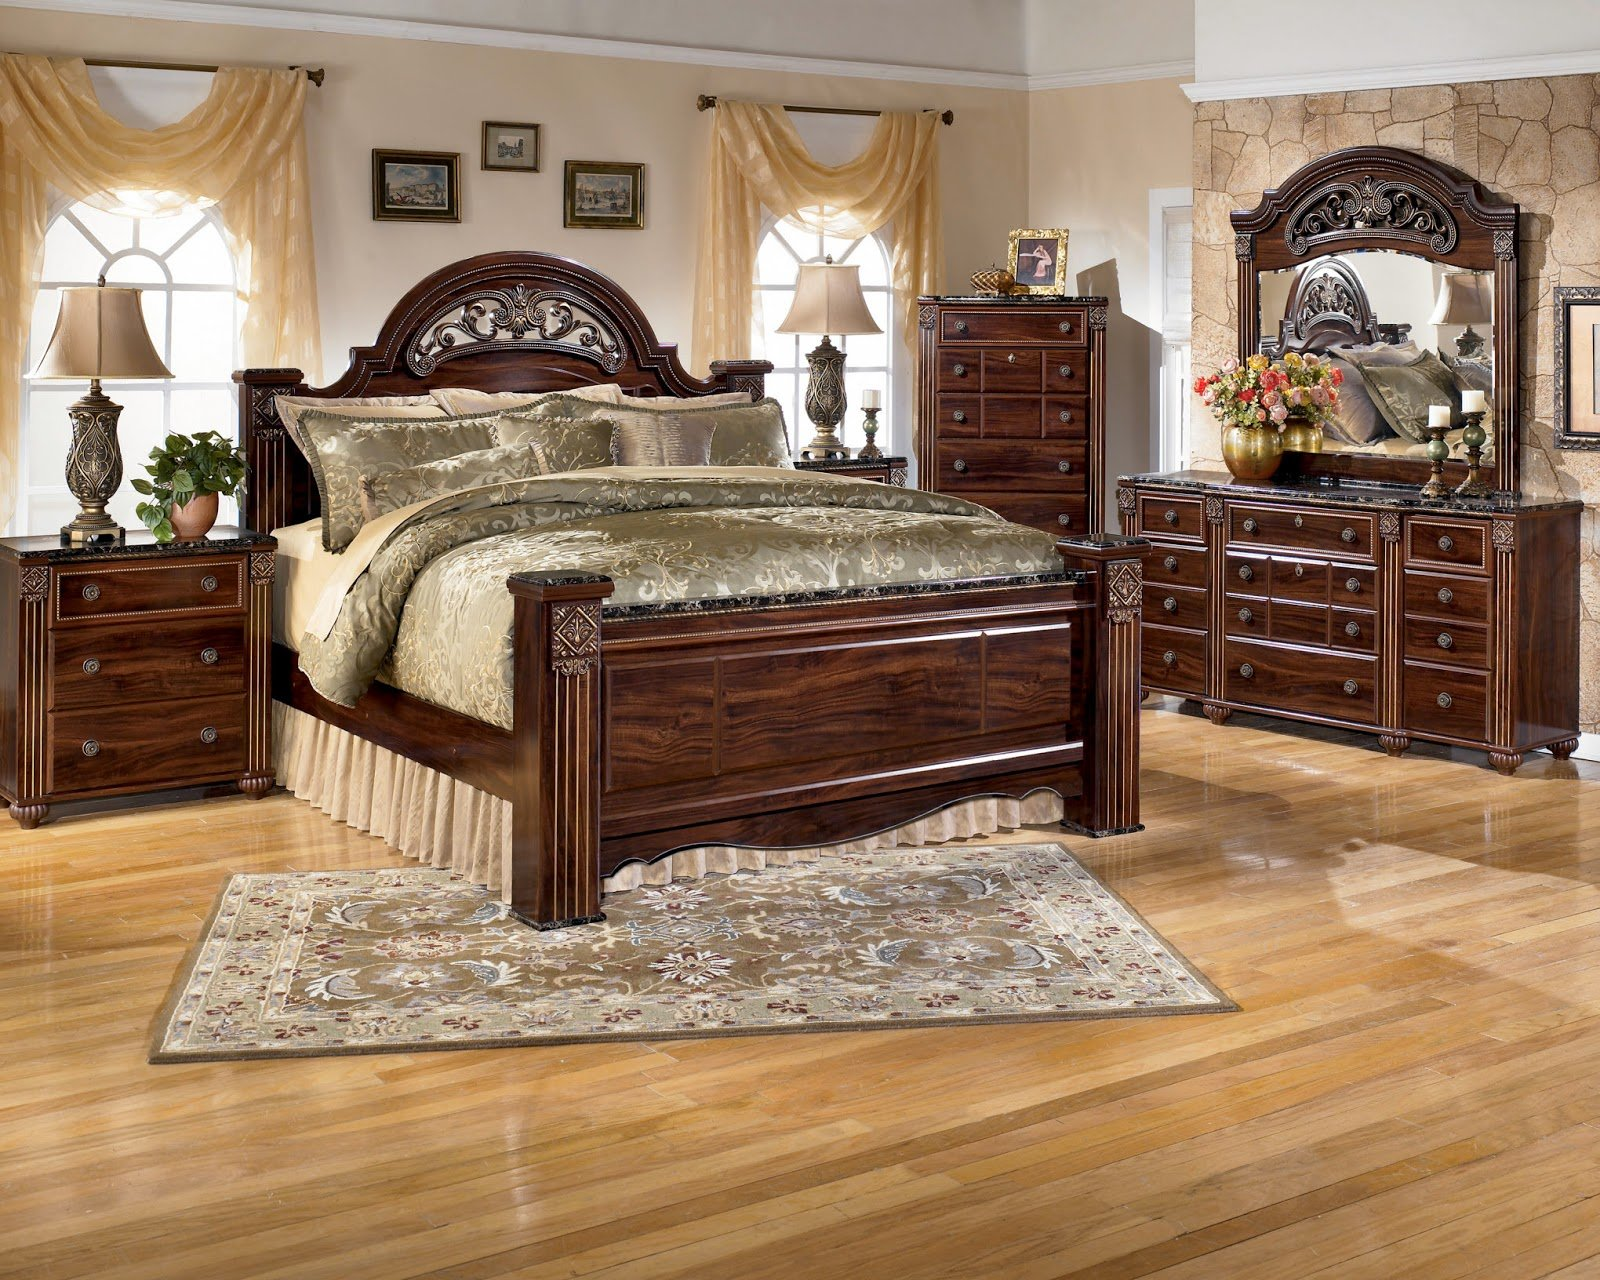 Best Ashley Furniture Bedroom Sets On Sale Bedroom Furniture With Pictures